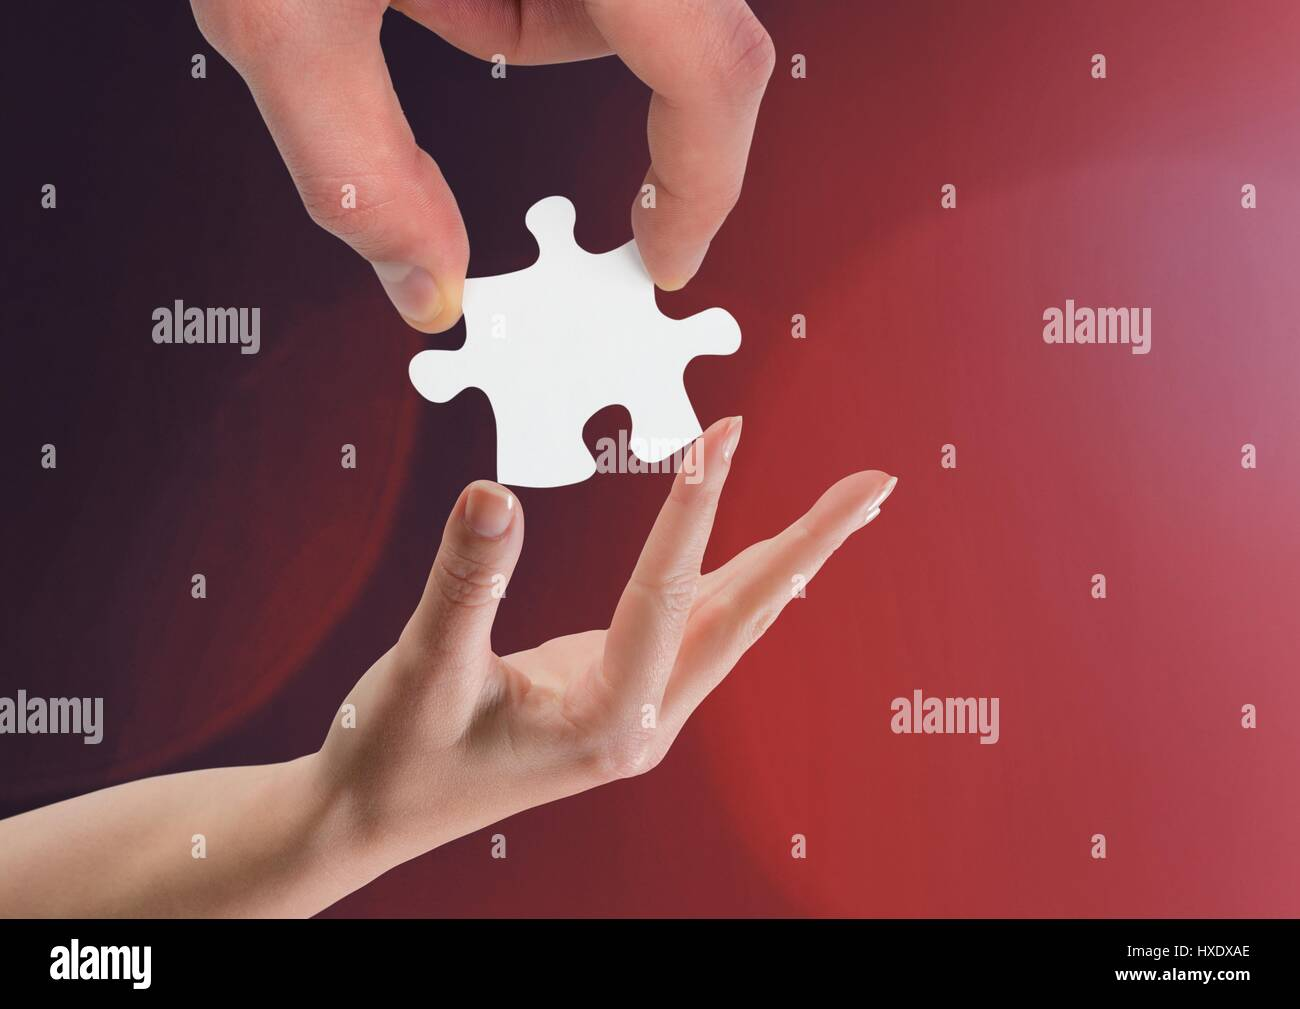 Digital composite of Hands holding jigsaw piece helping against red background Stock Photo